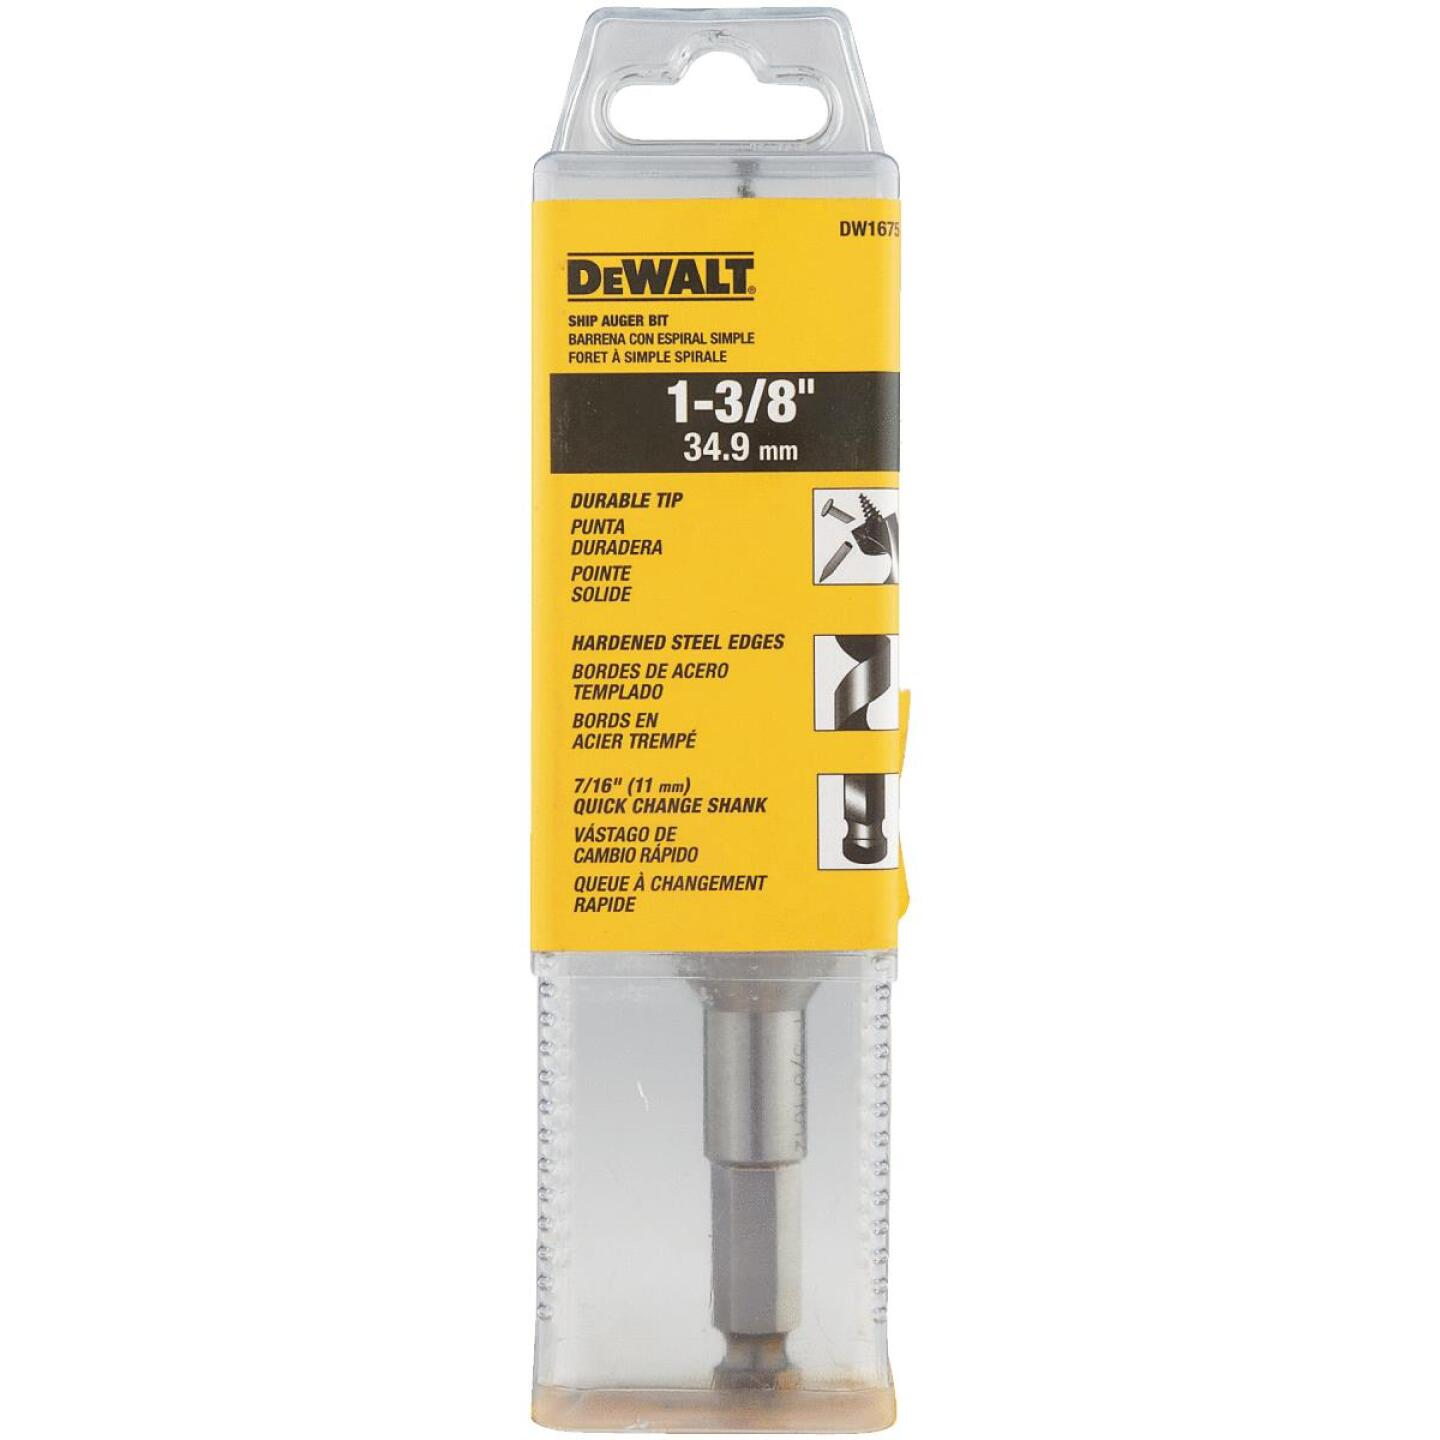 DeWalt Power Ship 1-3/8 In. x 6 In. Quick Change Auger Bit Image 3